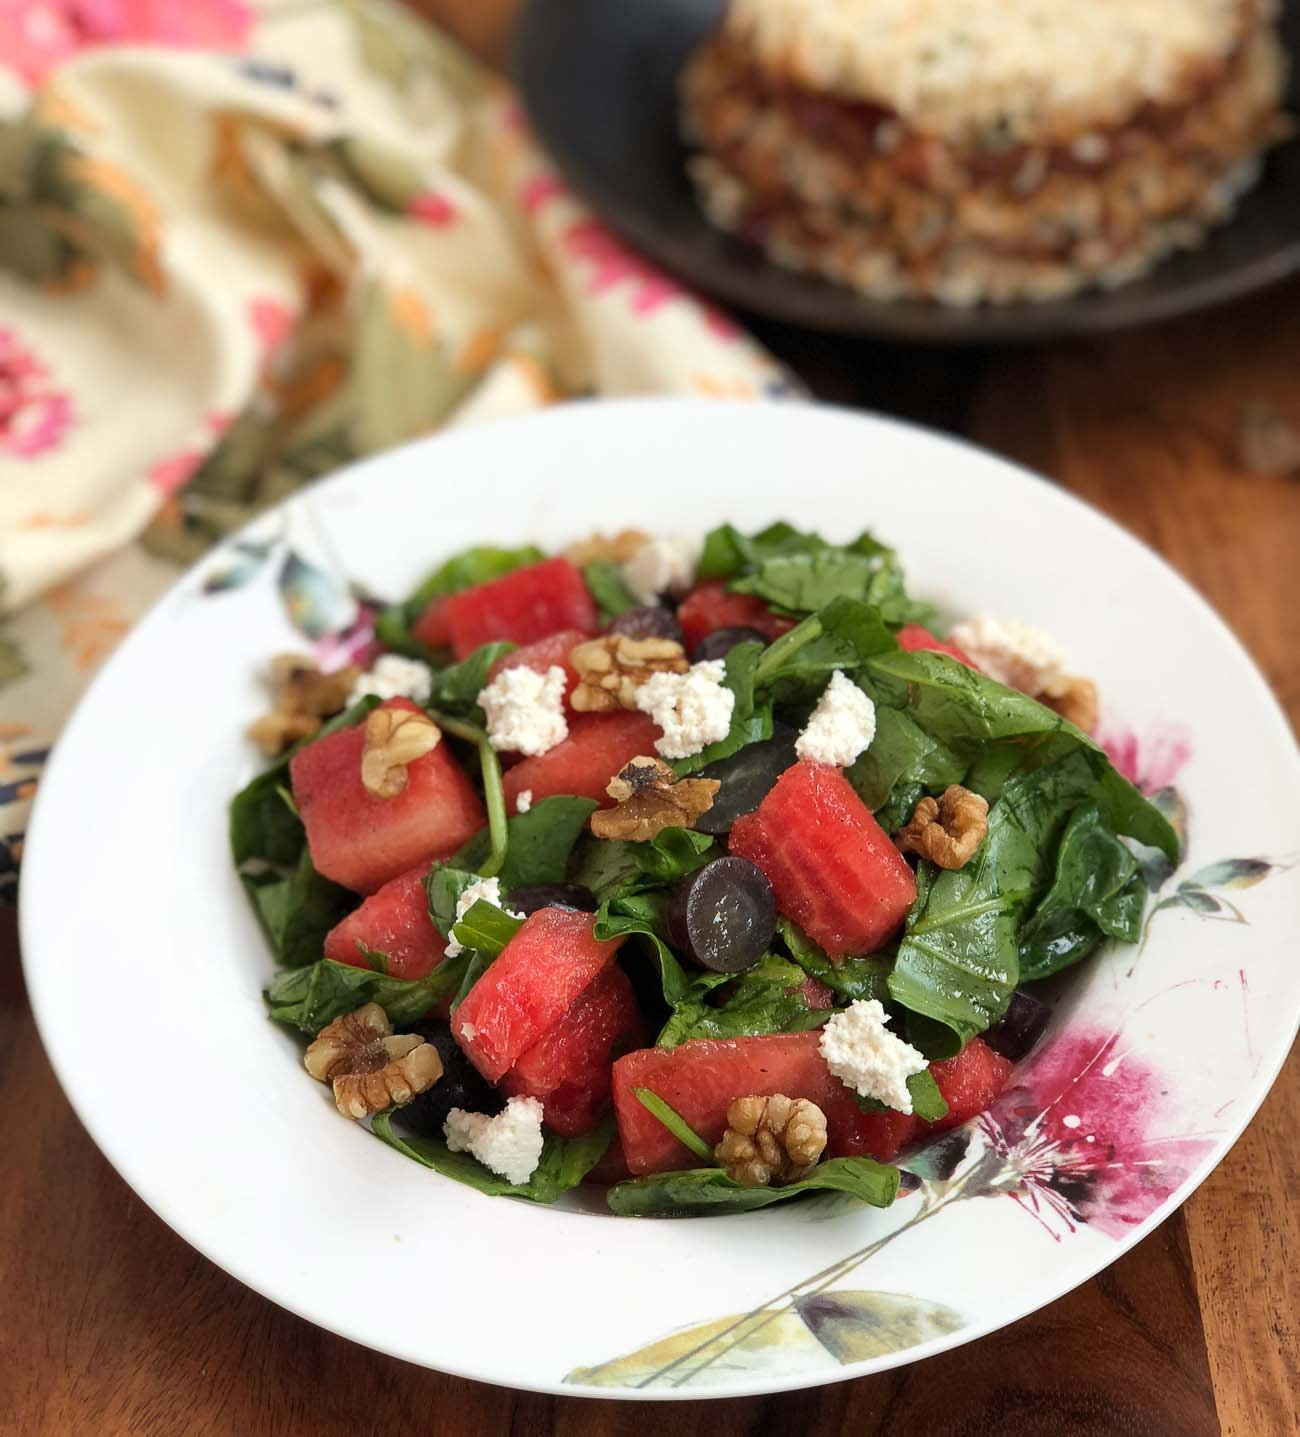 Spinach Watermelon Salad Recipe With Walnuts